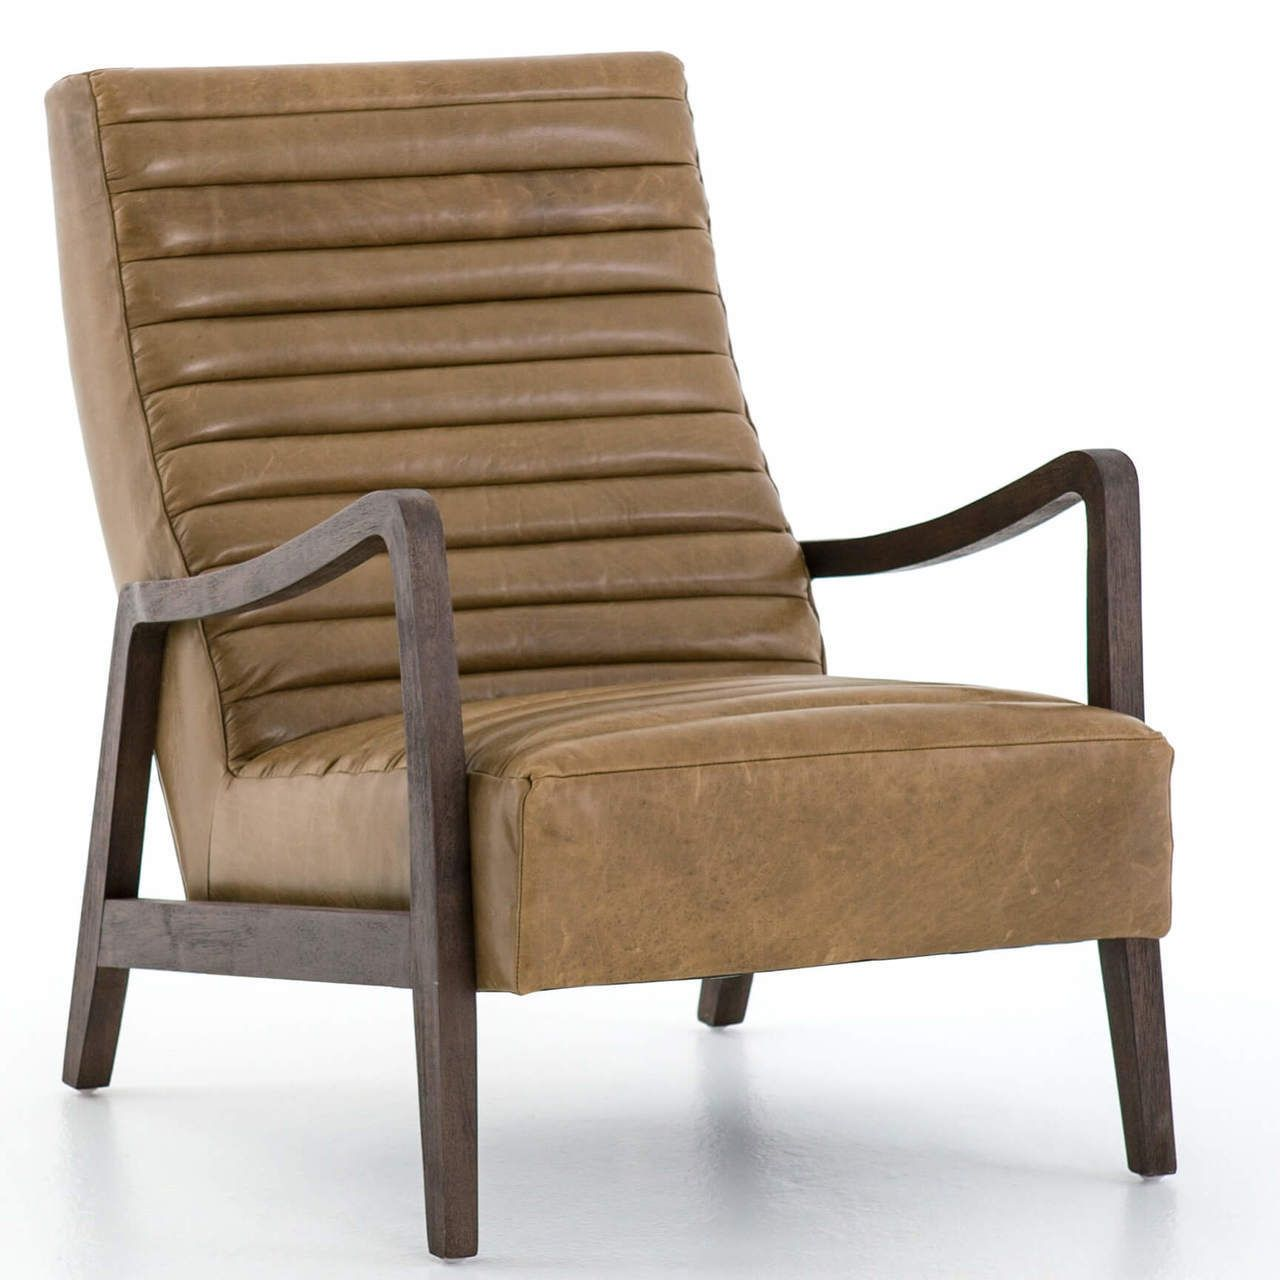 Pin On Chairs For Living Room